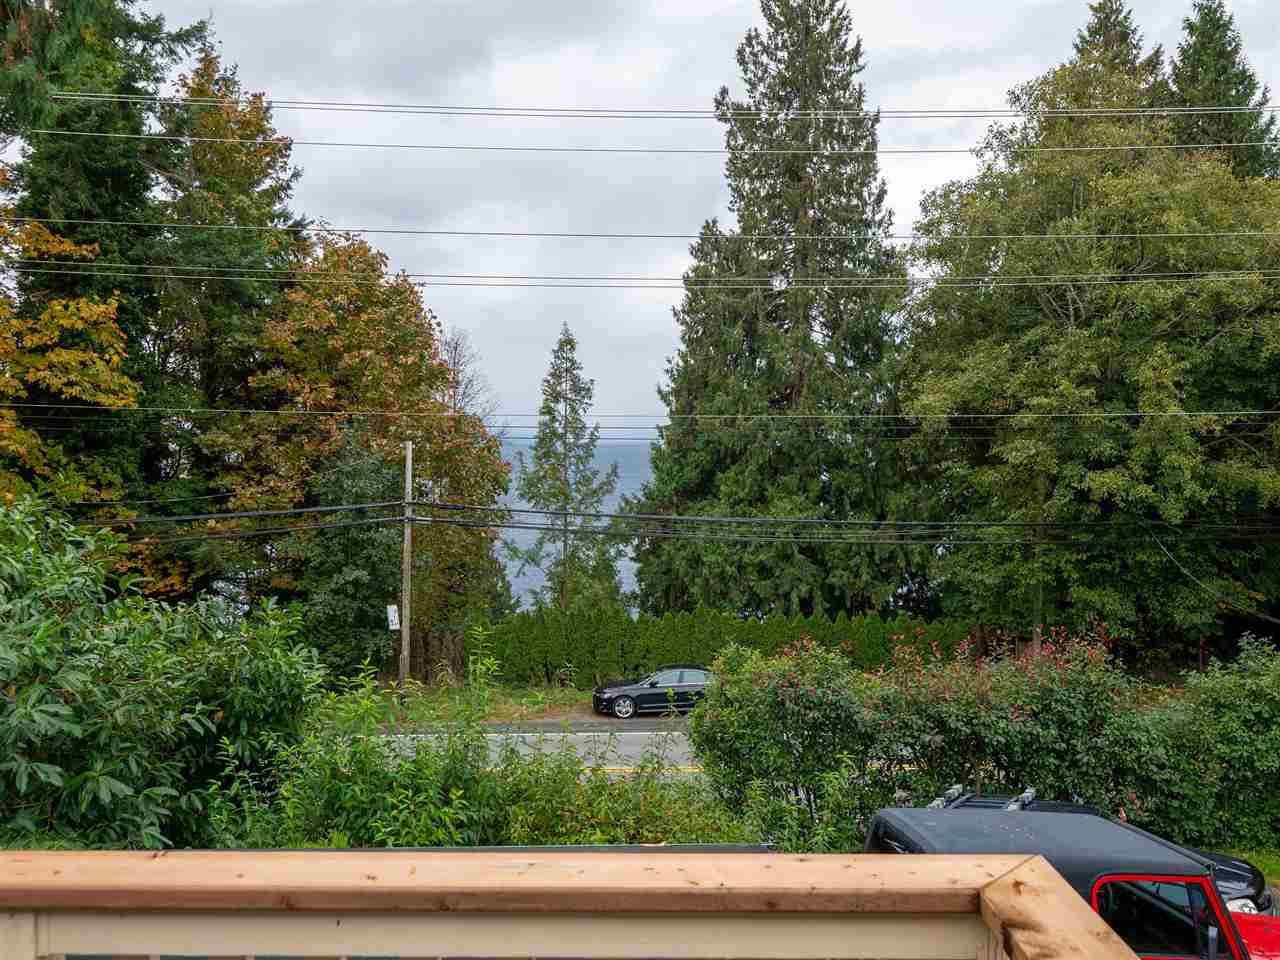 Main Photo: 4980 SUNSHINE COAST Highway in Sechelt: Sechelt District House for sale (Sunshine Coast)  : MLS®# R2509210